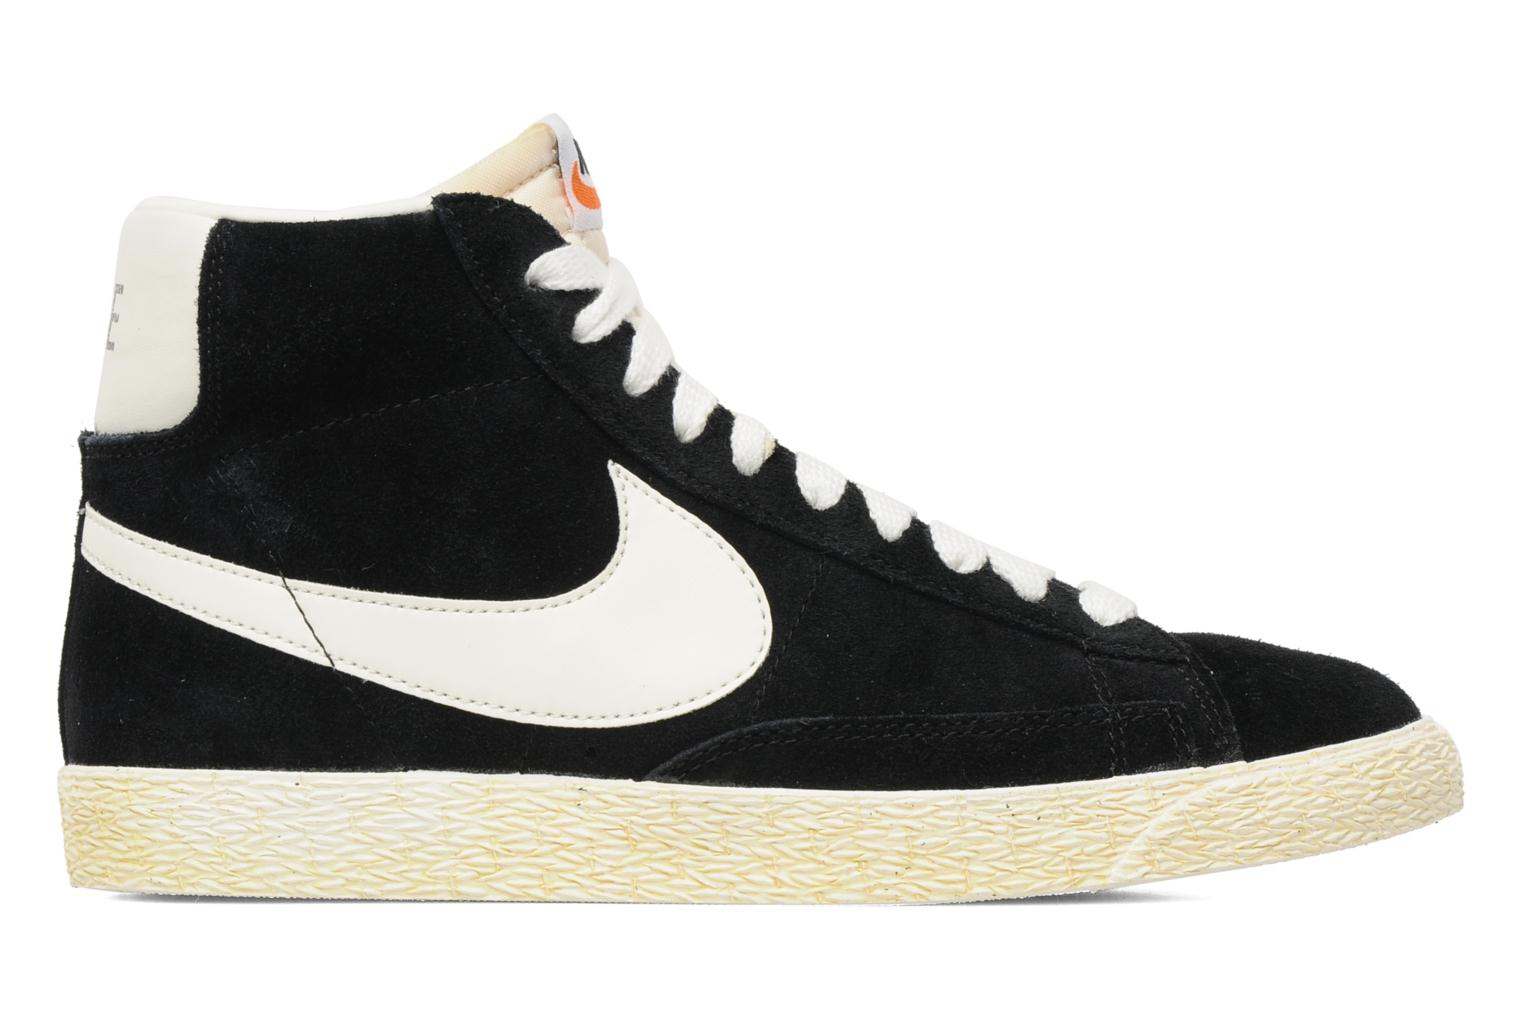 nike blazer high vintage schwarz sneaker bei sarenza. Black Bedroom Furniture Sets. Home Design Ideas